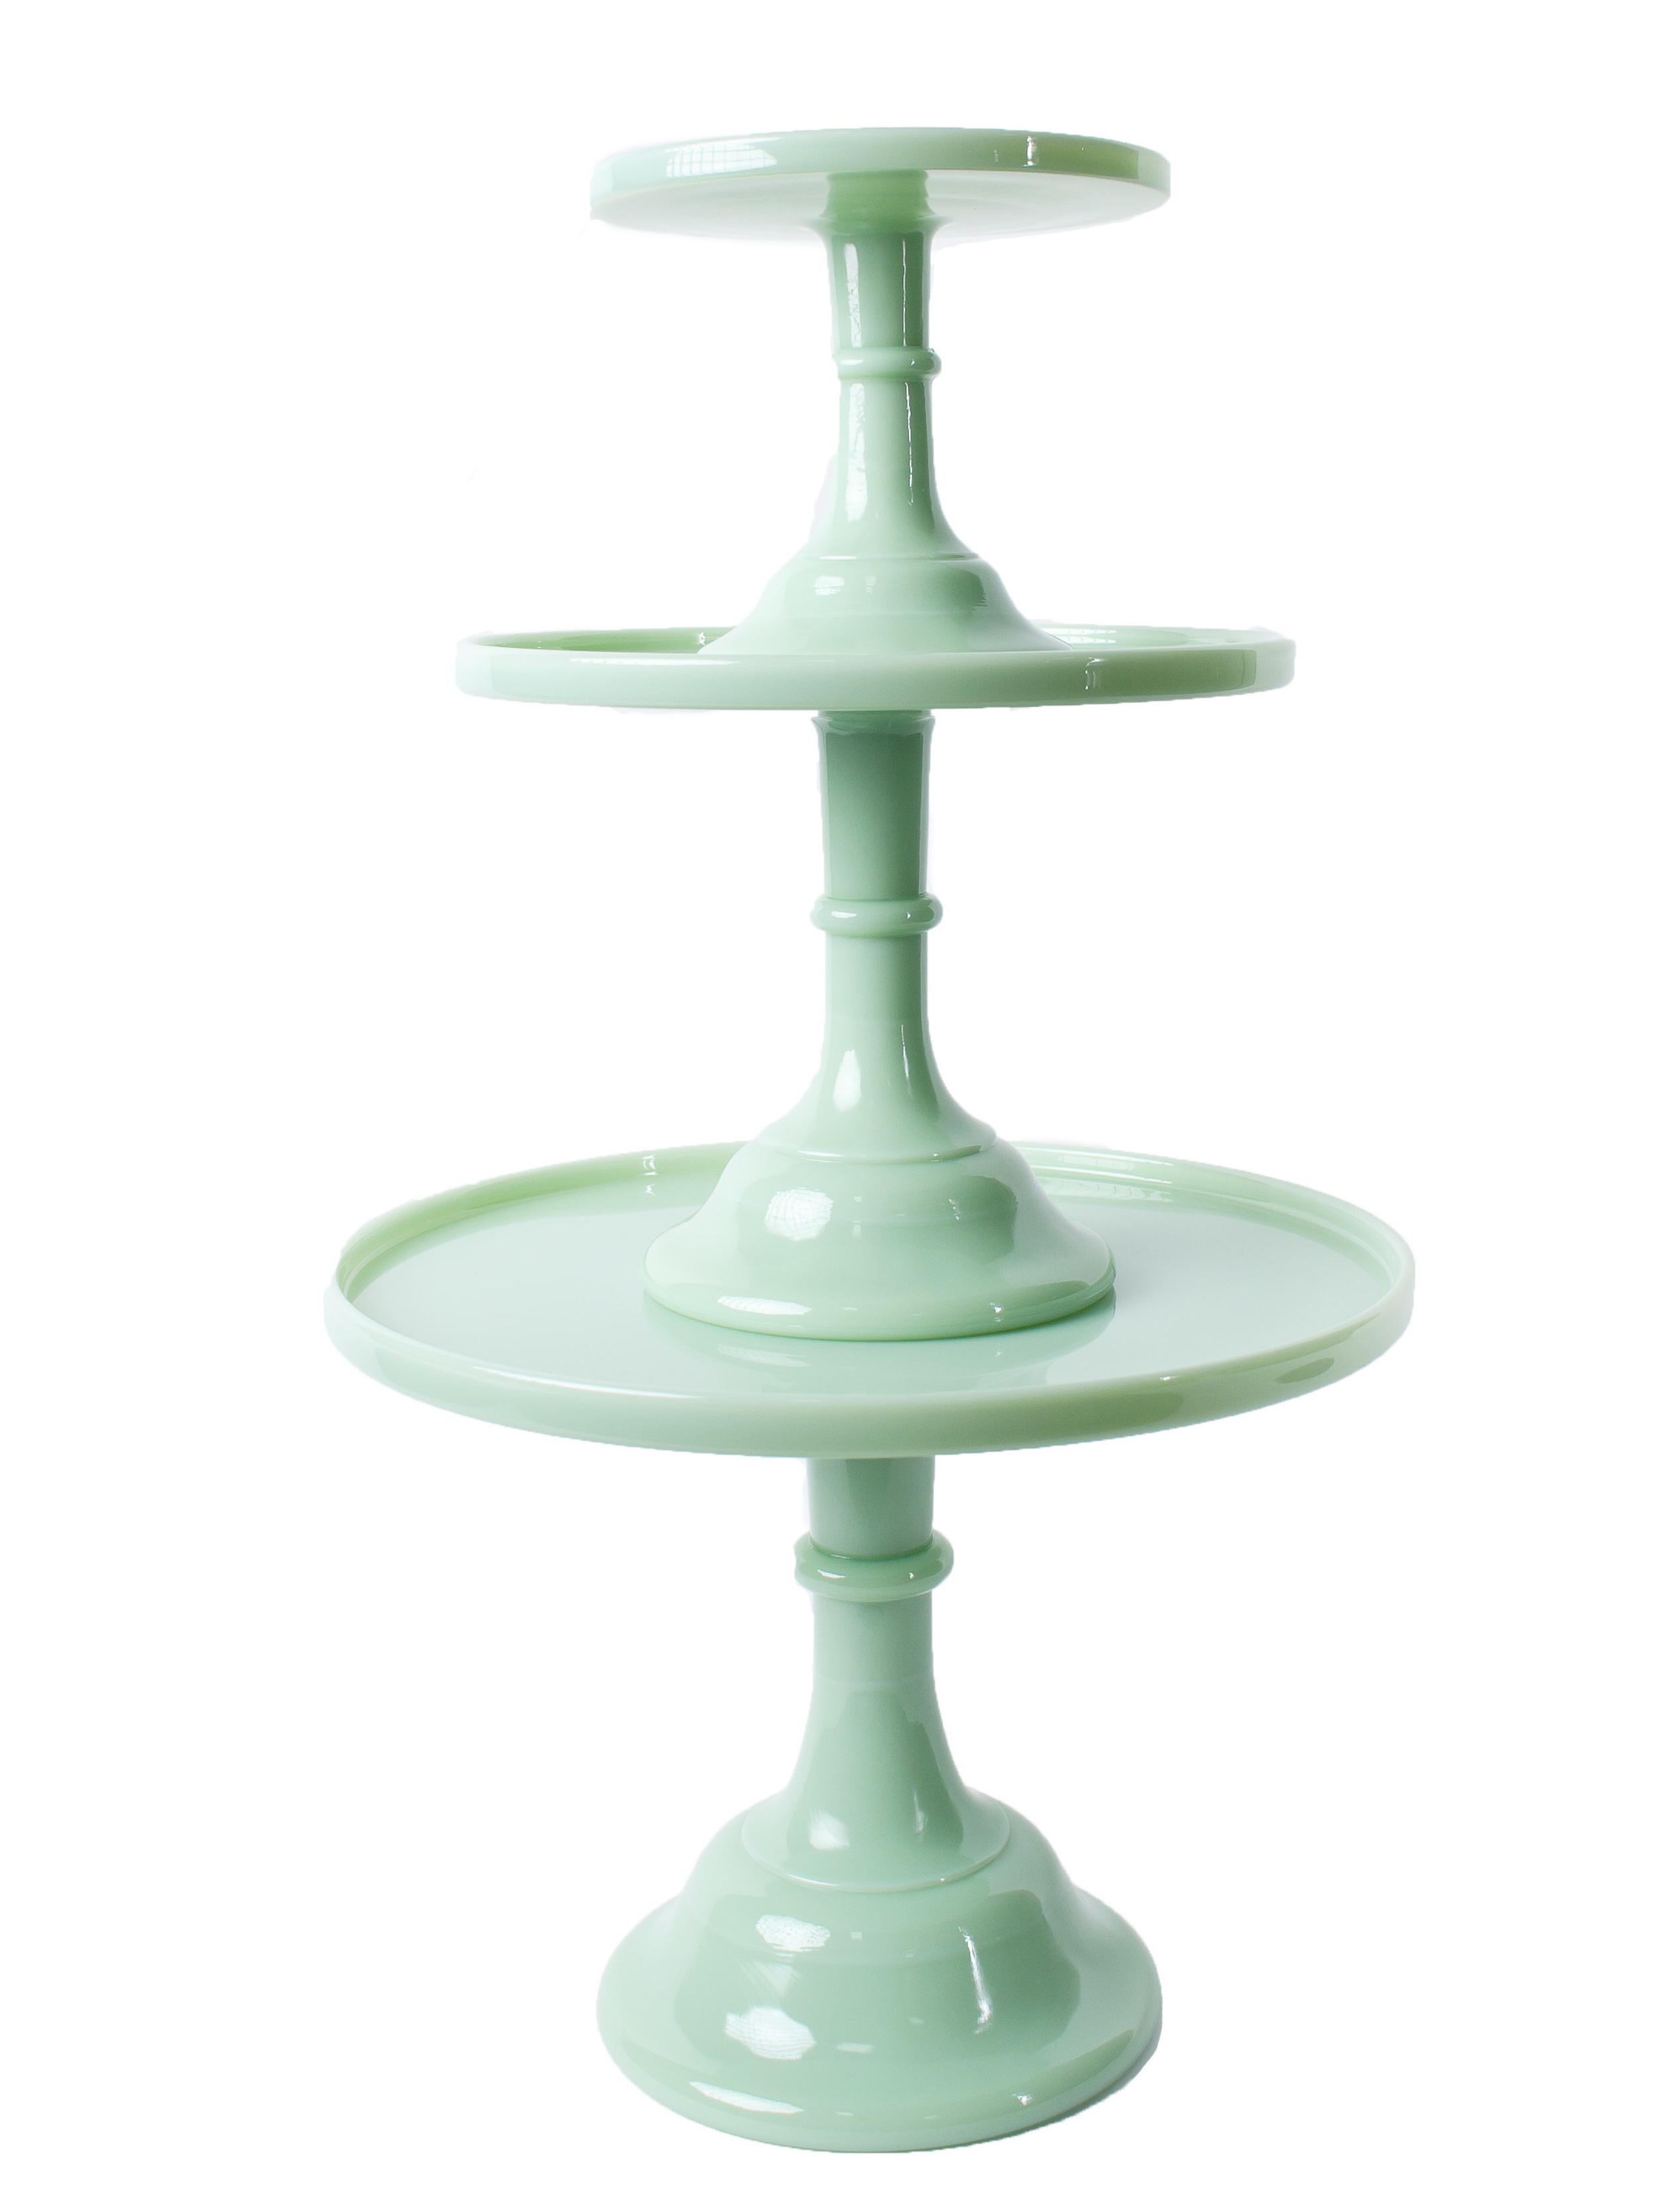 'Jade' Cake Stands (shown stacked)